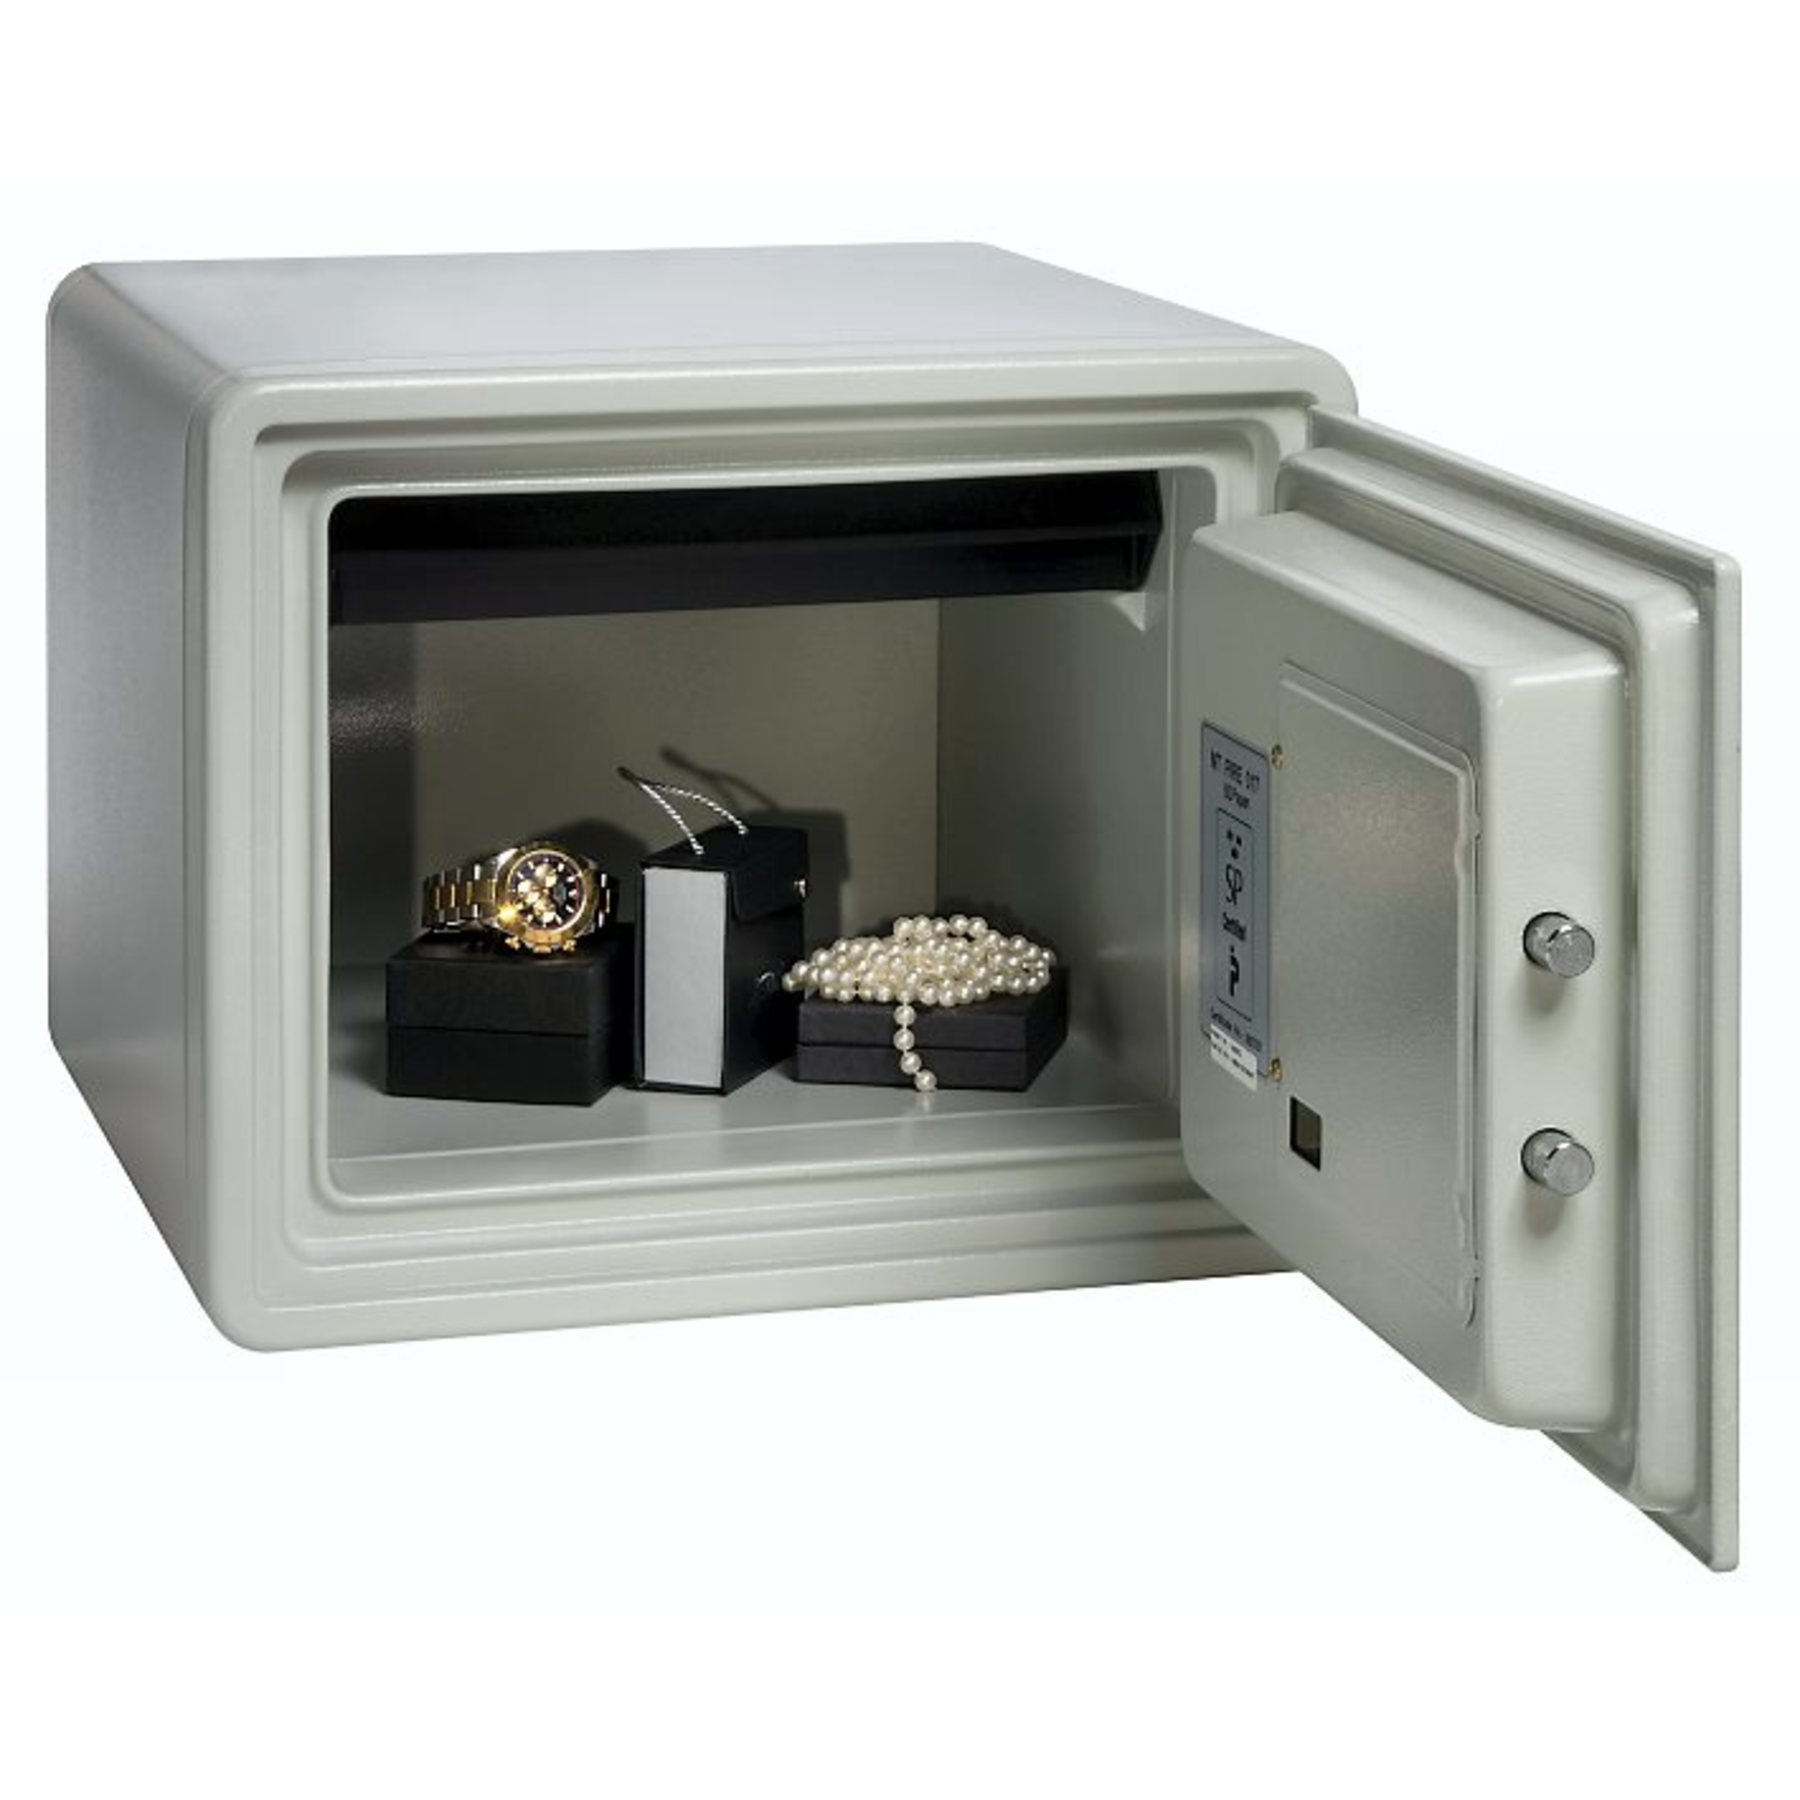 chubb executive 25k fireproof safe - Fire Proof Safe